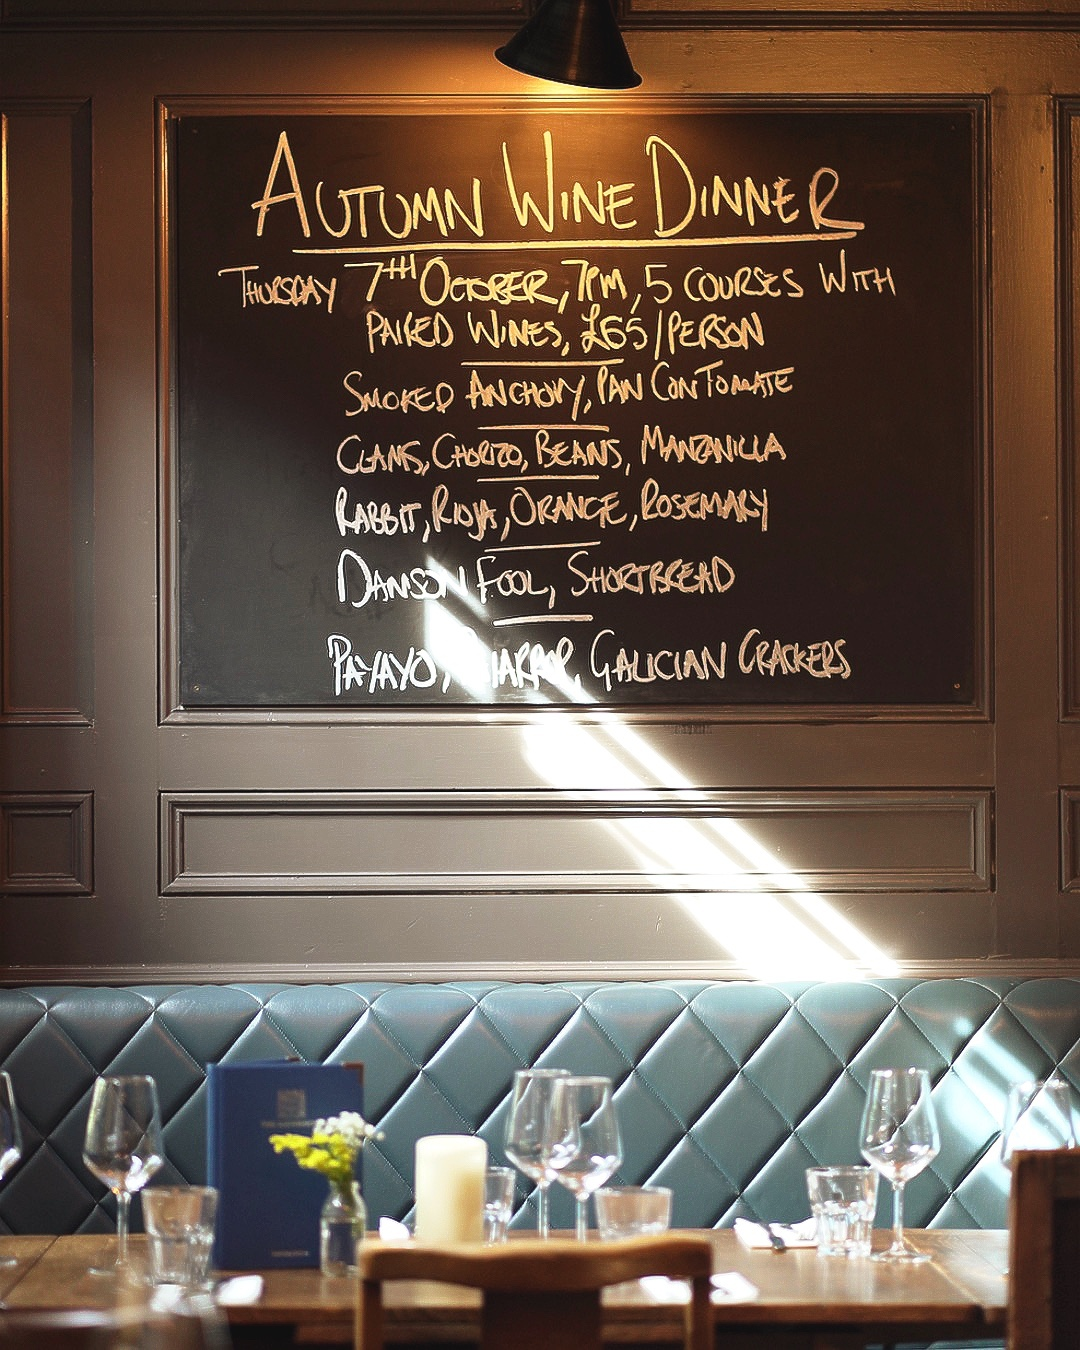 We are so excited to announce our Autumn Wine Dinner on Thursday 7th October! On this extravagant evening we will serve you 5 seasonal & delicious dishes paired with a selection of our best wines!   Only £65 per person, drop us and email or give us a call to reserve your table!   #highgate #hampstead #northlondon #pubsoflondon #wine #dinewithus #winepairings #autumn #delicious #food #foodie #foodofinstagram